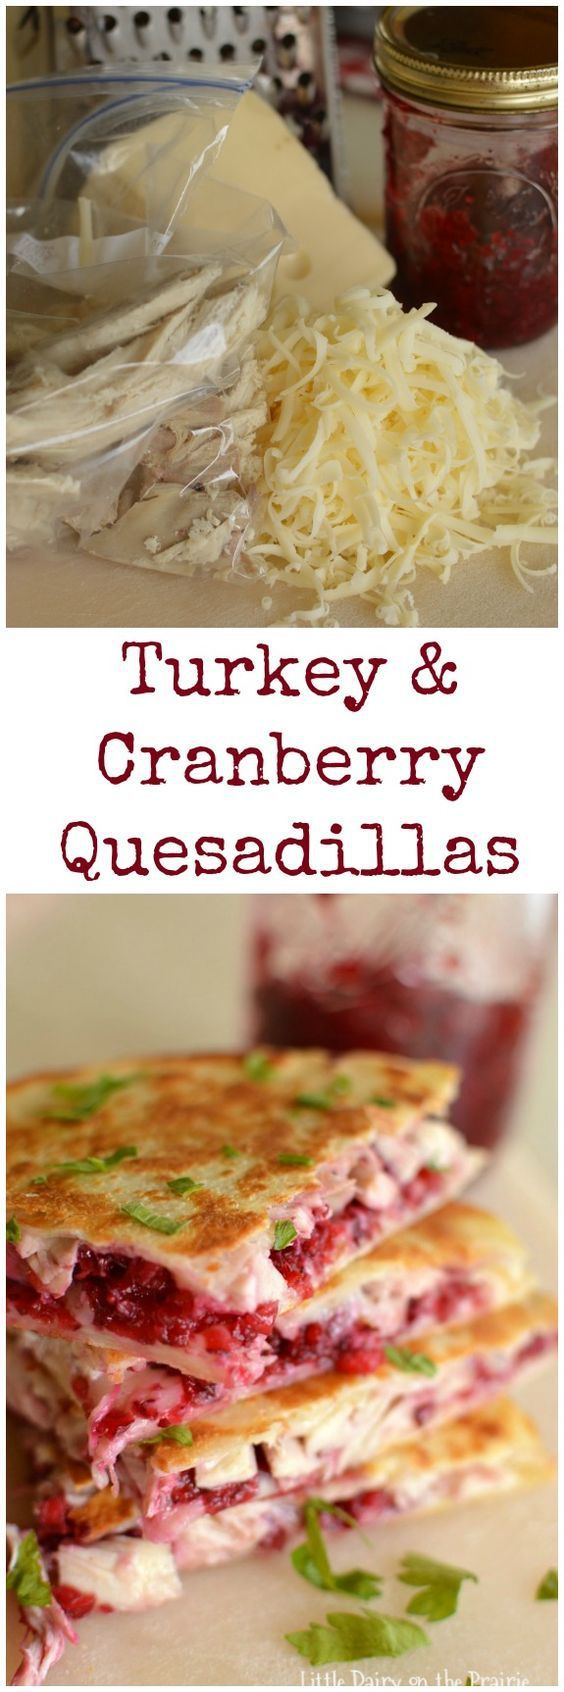 Turkey and Cranberry Quesadillas are quick and easy way to use up ...